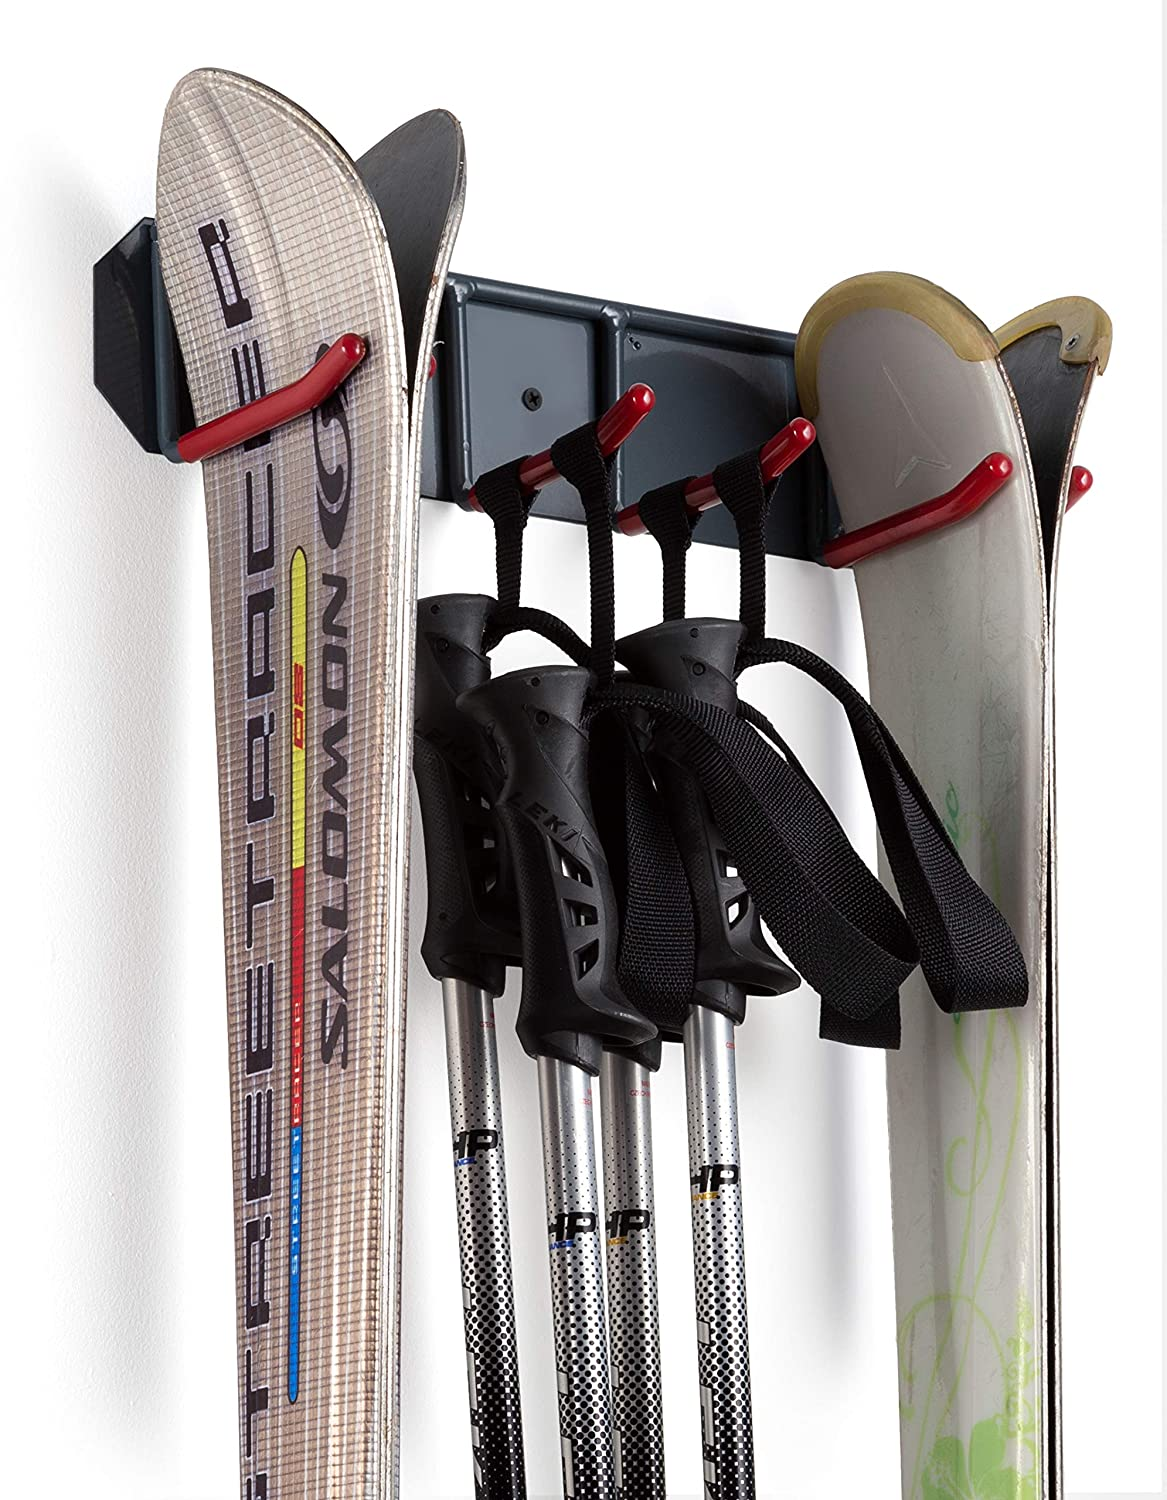 e5a5ec86829 Wall Mounted Storage Rack Organizer for Skis and Poles - Heavy Duty  Horizontal Wall Ski Rack Storage with Metal Frame and Padded Hooks -  Indoors